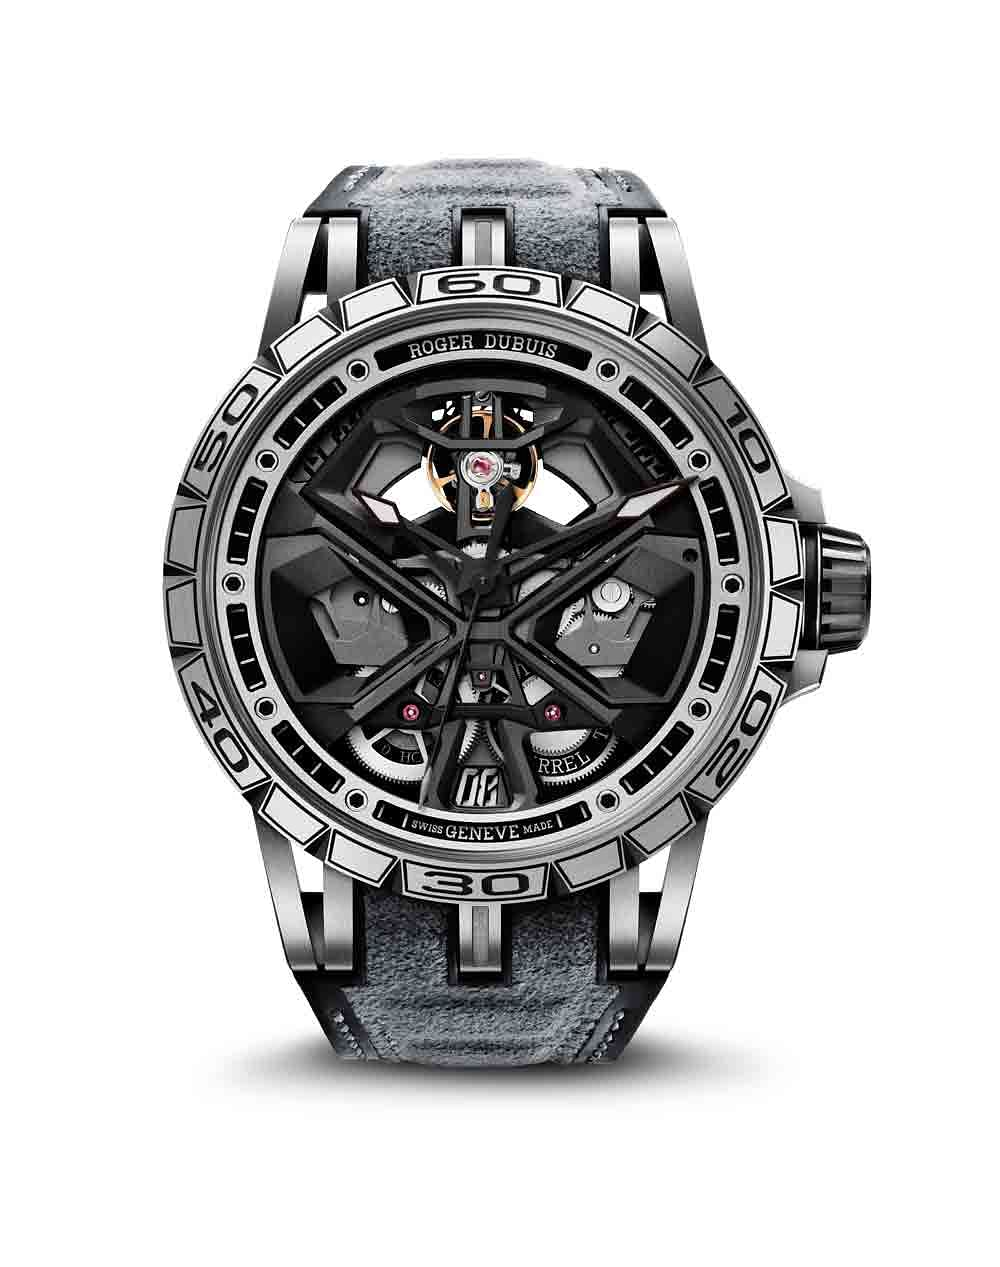 Roger Dubuis Excalibur Huracán featuring the new in-house movement: Caliber RD630